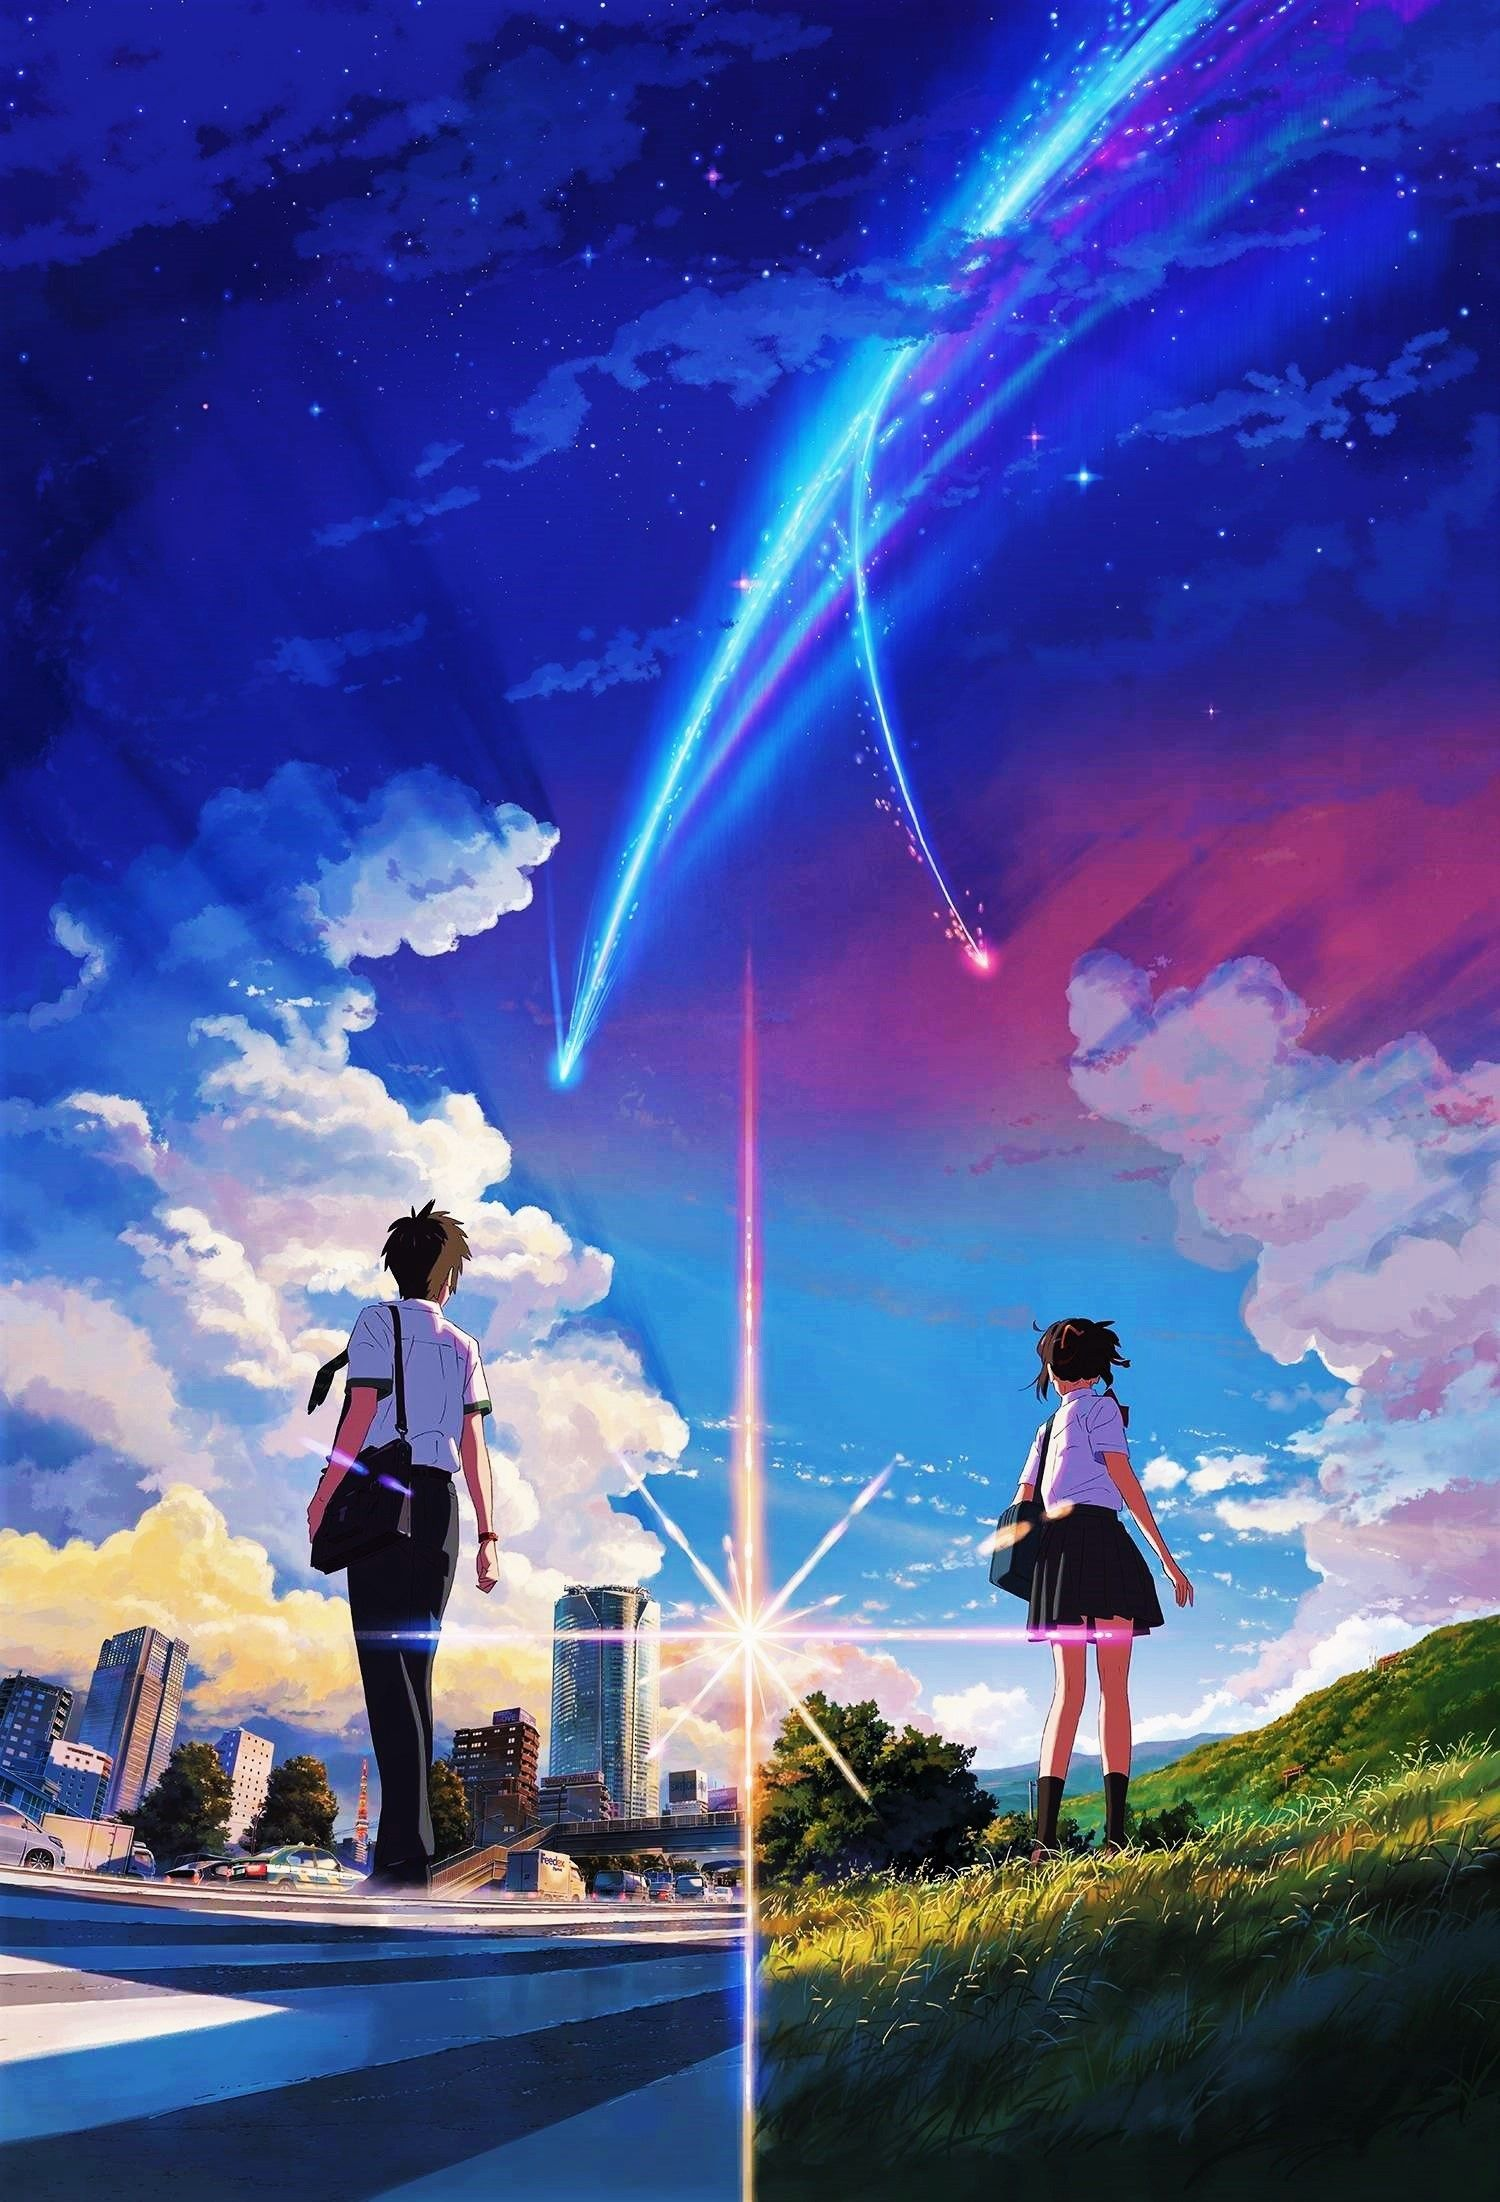 Kimi no Na Wa/Your name is - matching background